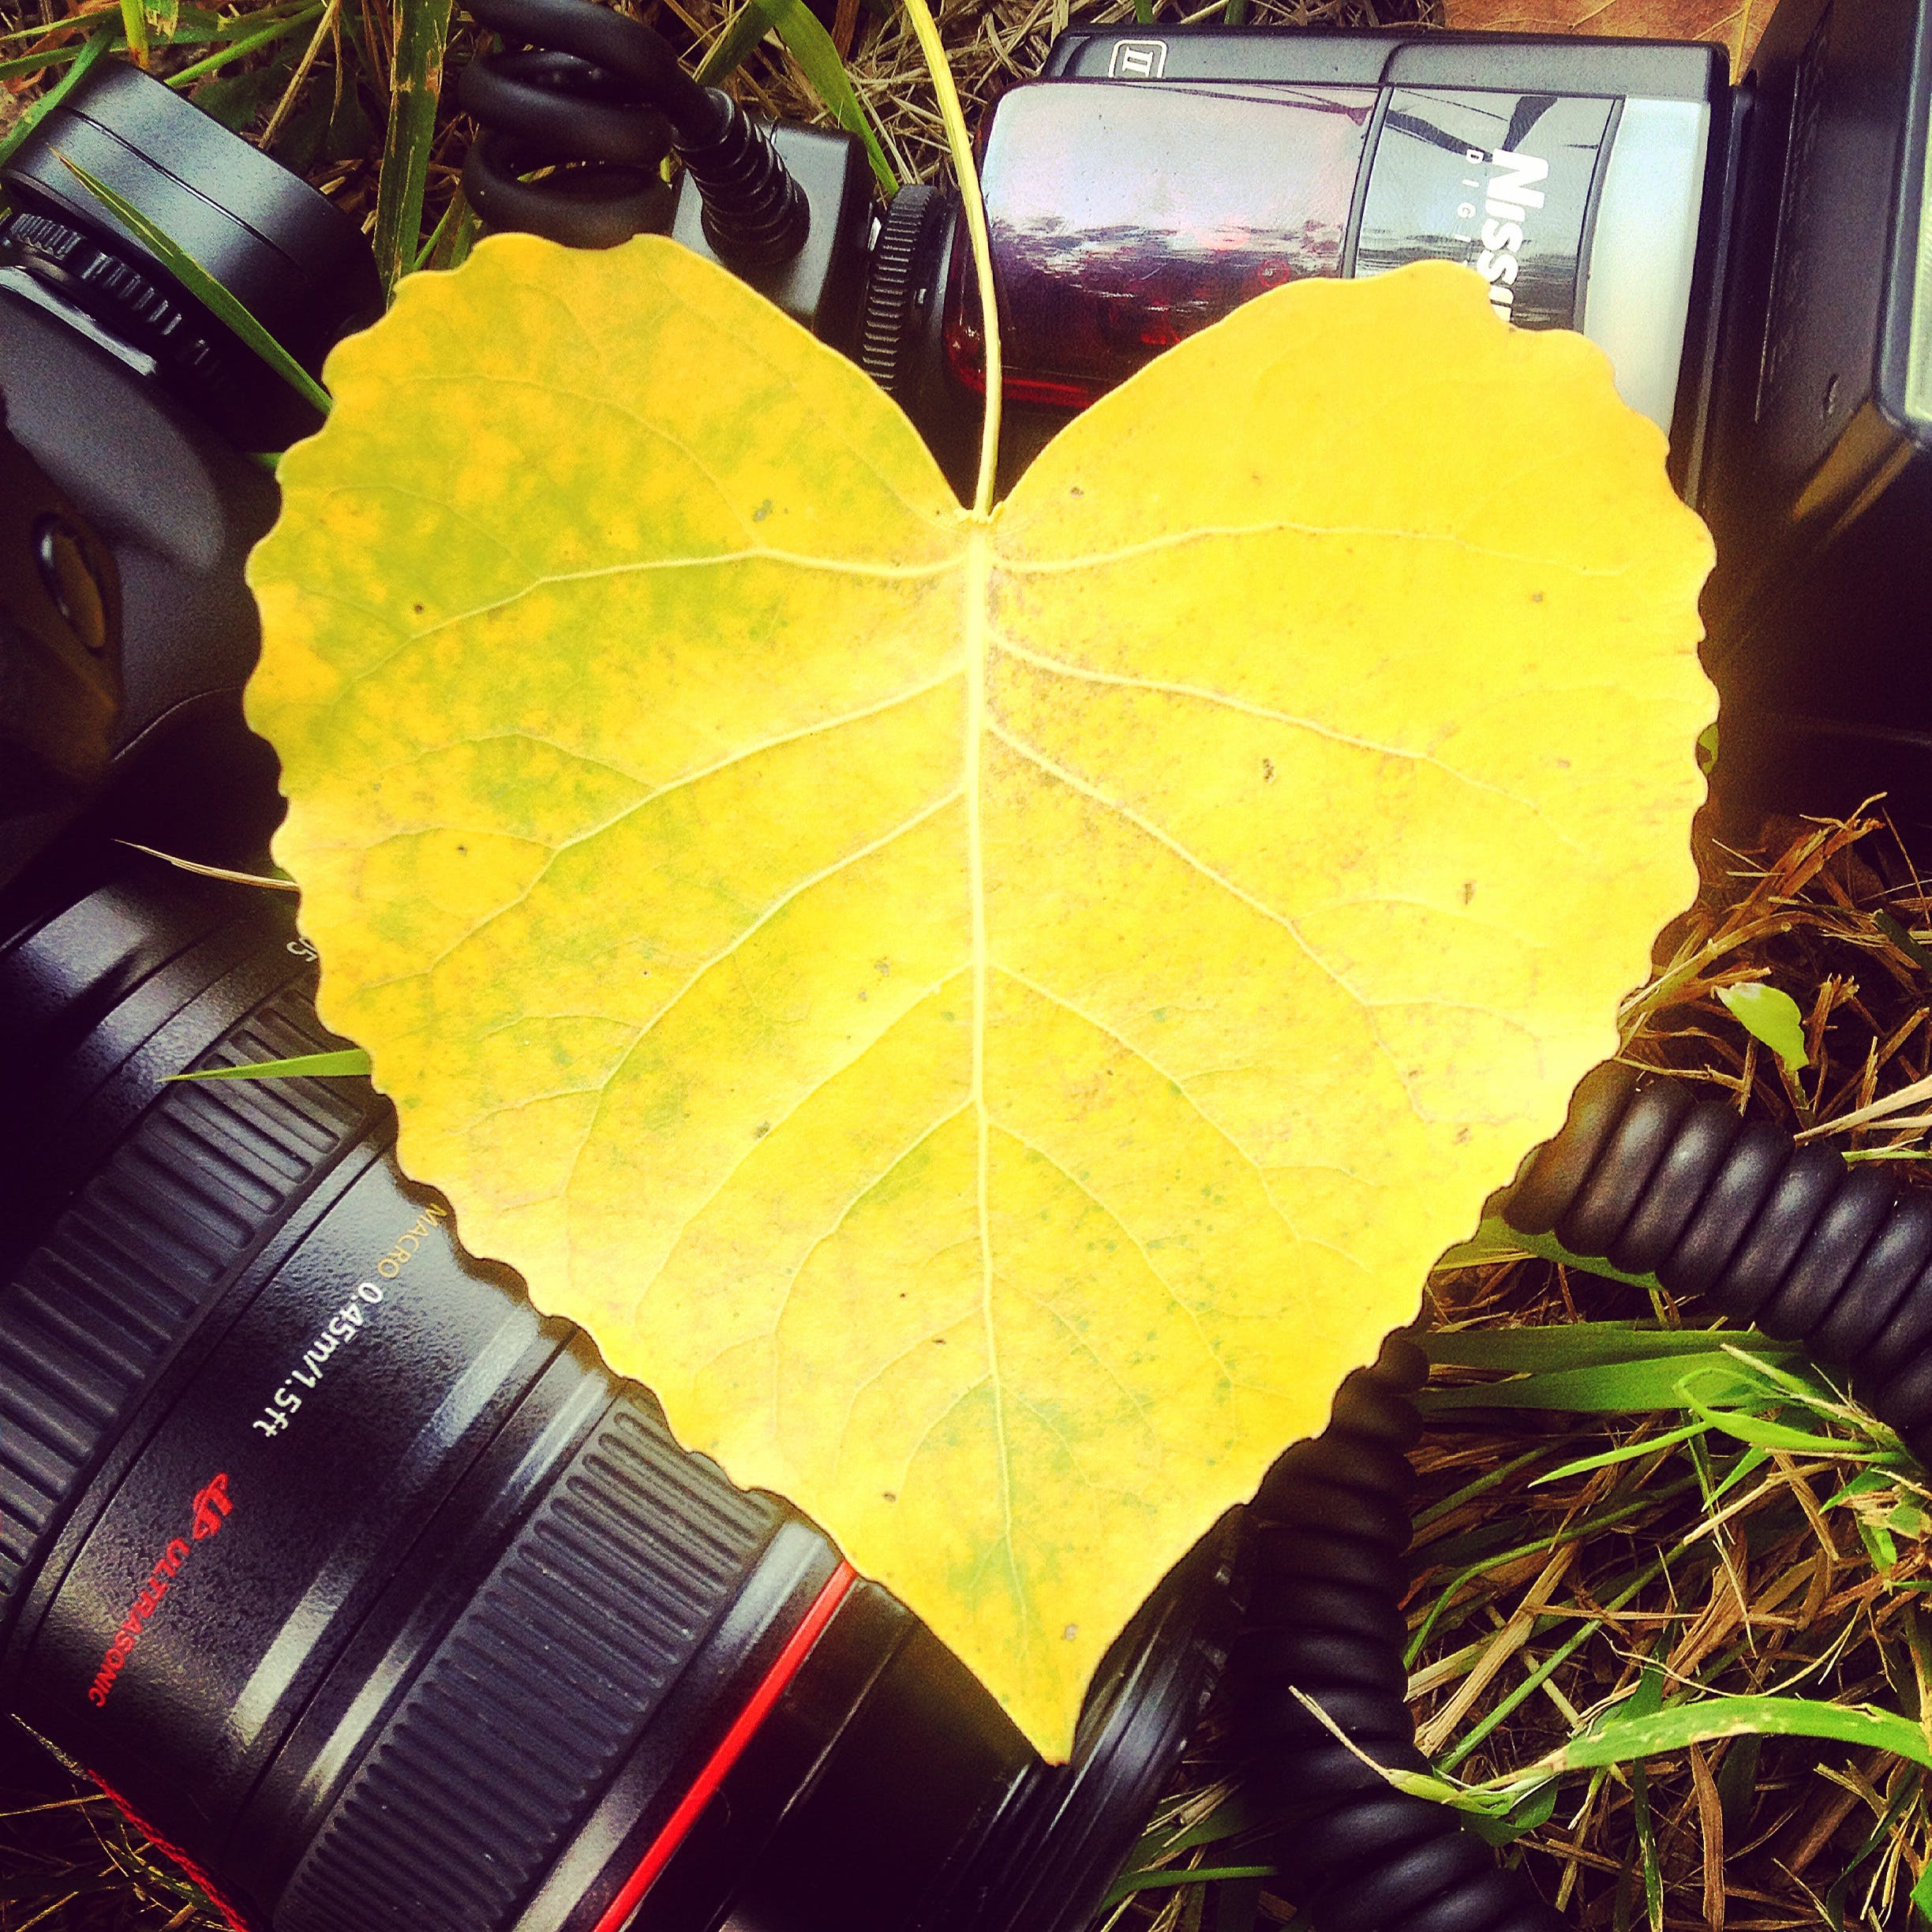 Free stock photo of love, heart, yellow, photography